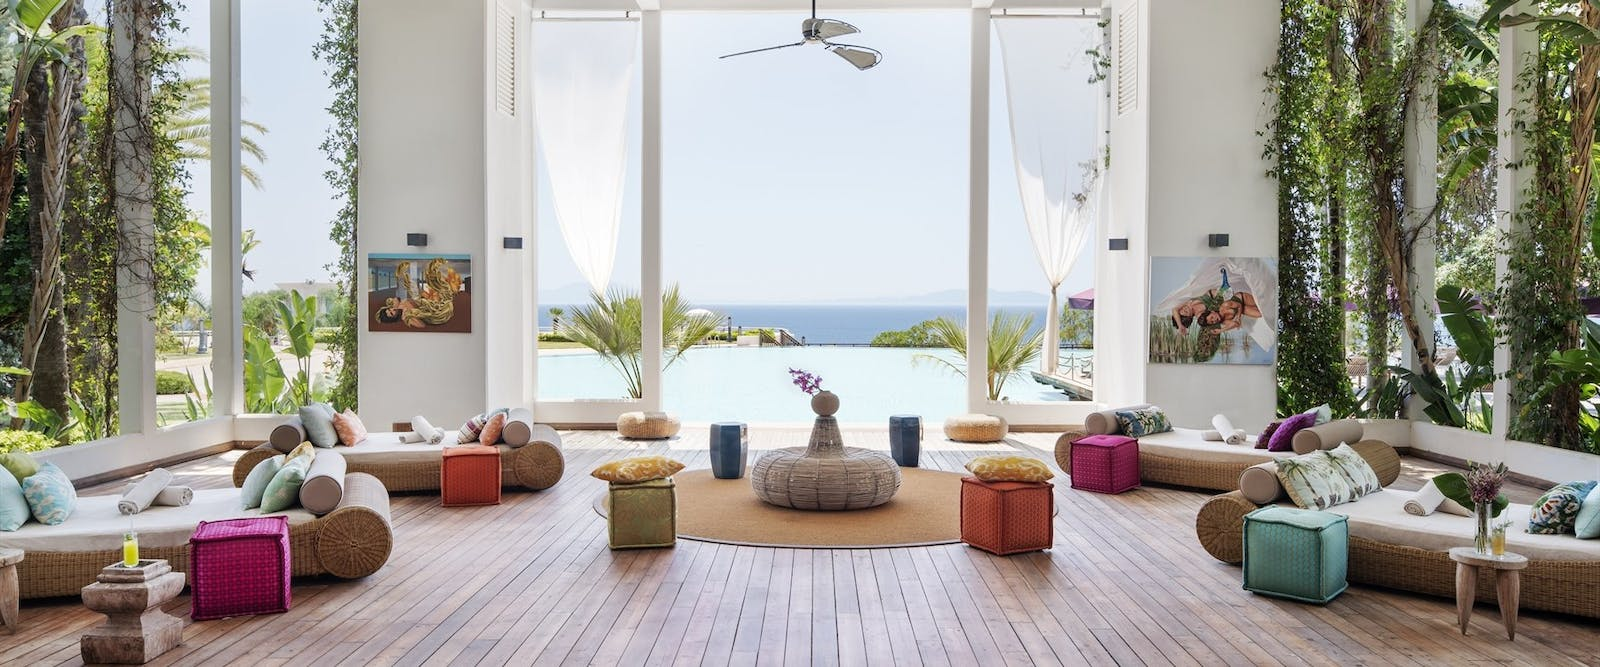 Chill Area, Kempinski Hotel Barbaros Bay, Bodrum, Turkey